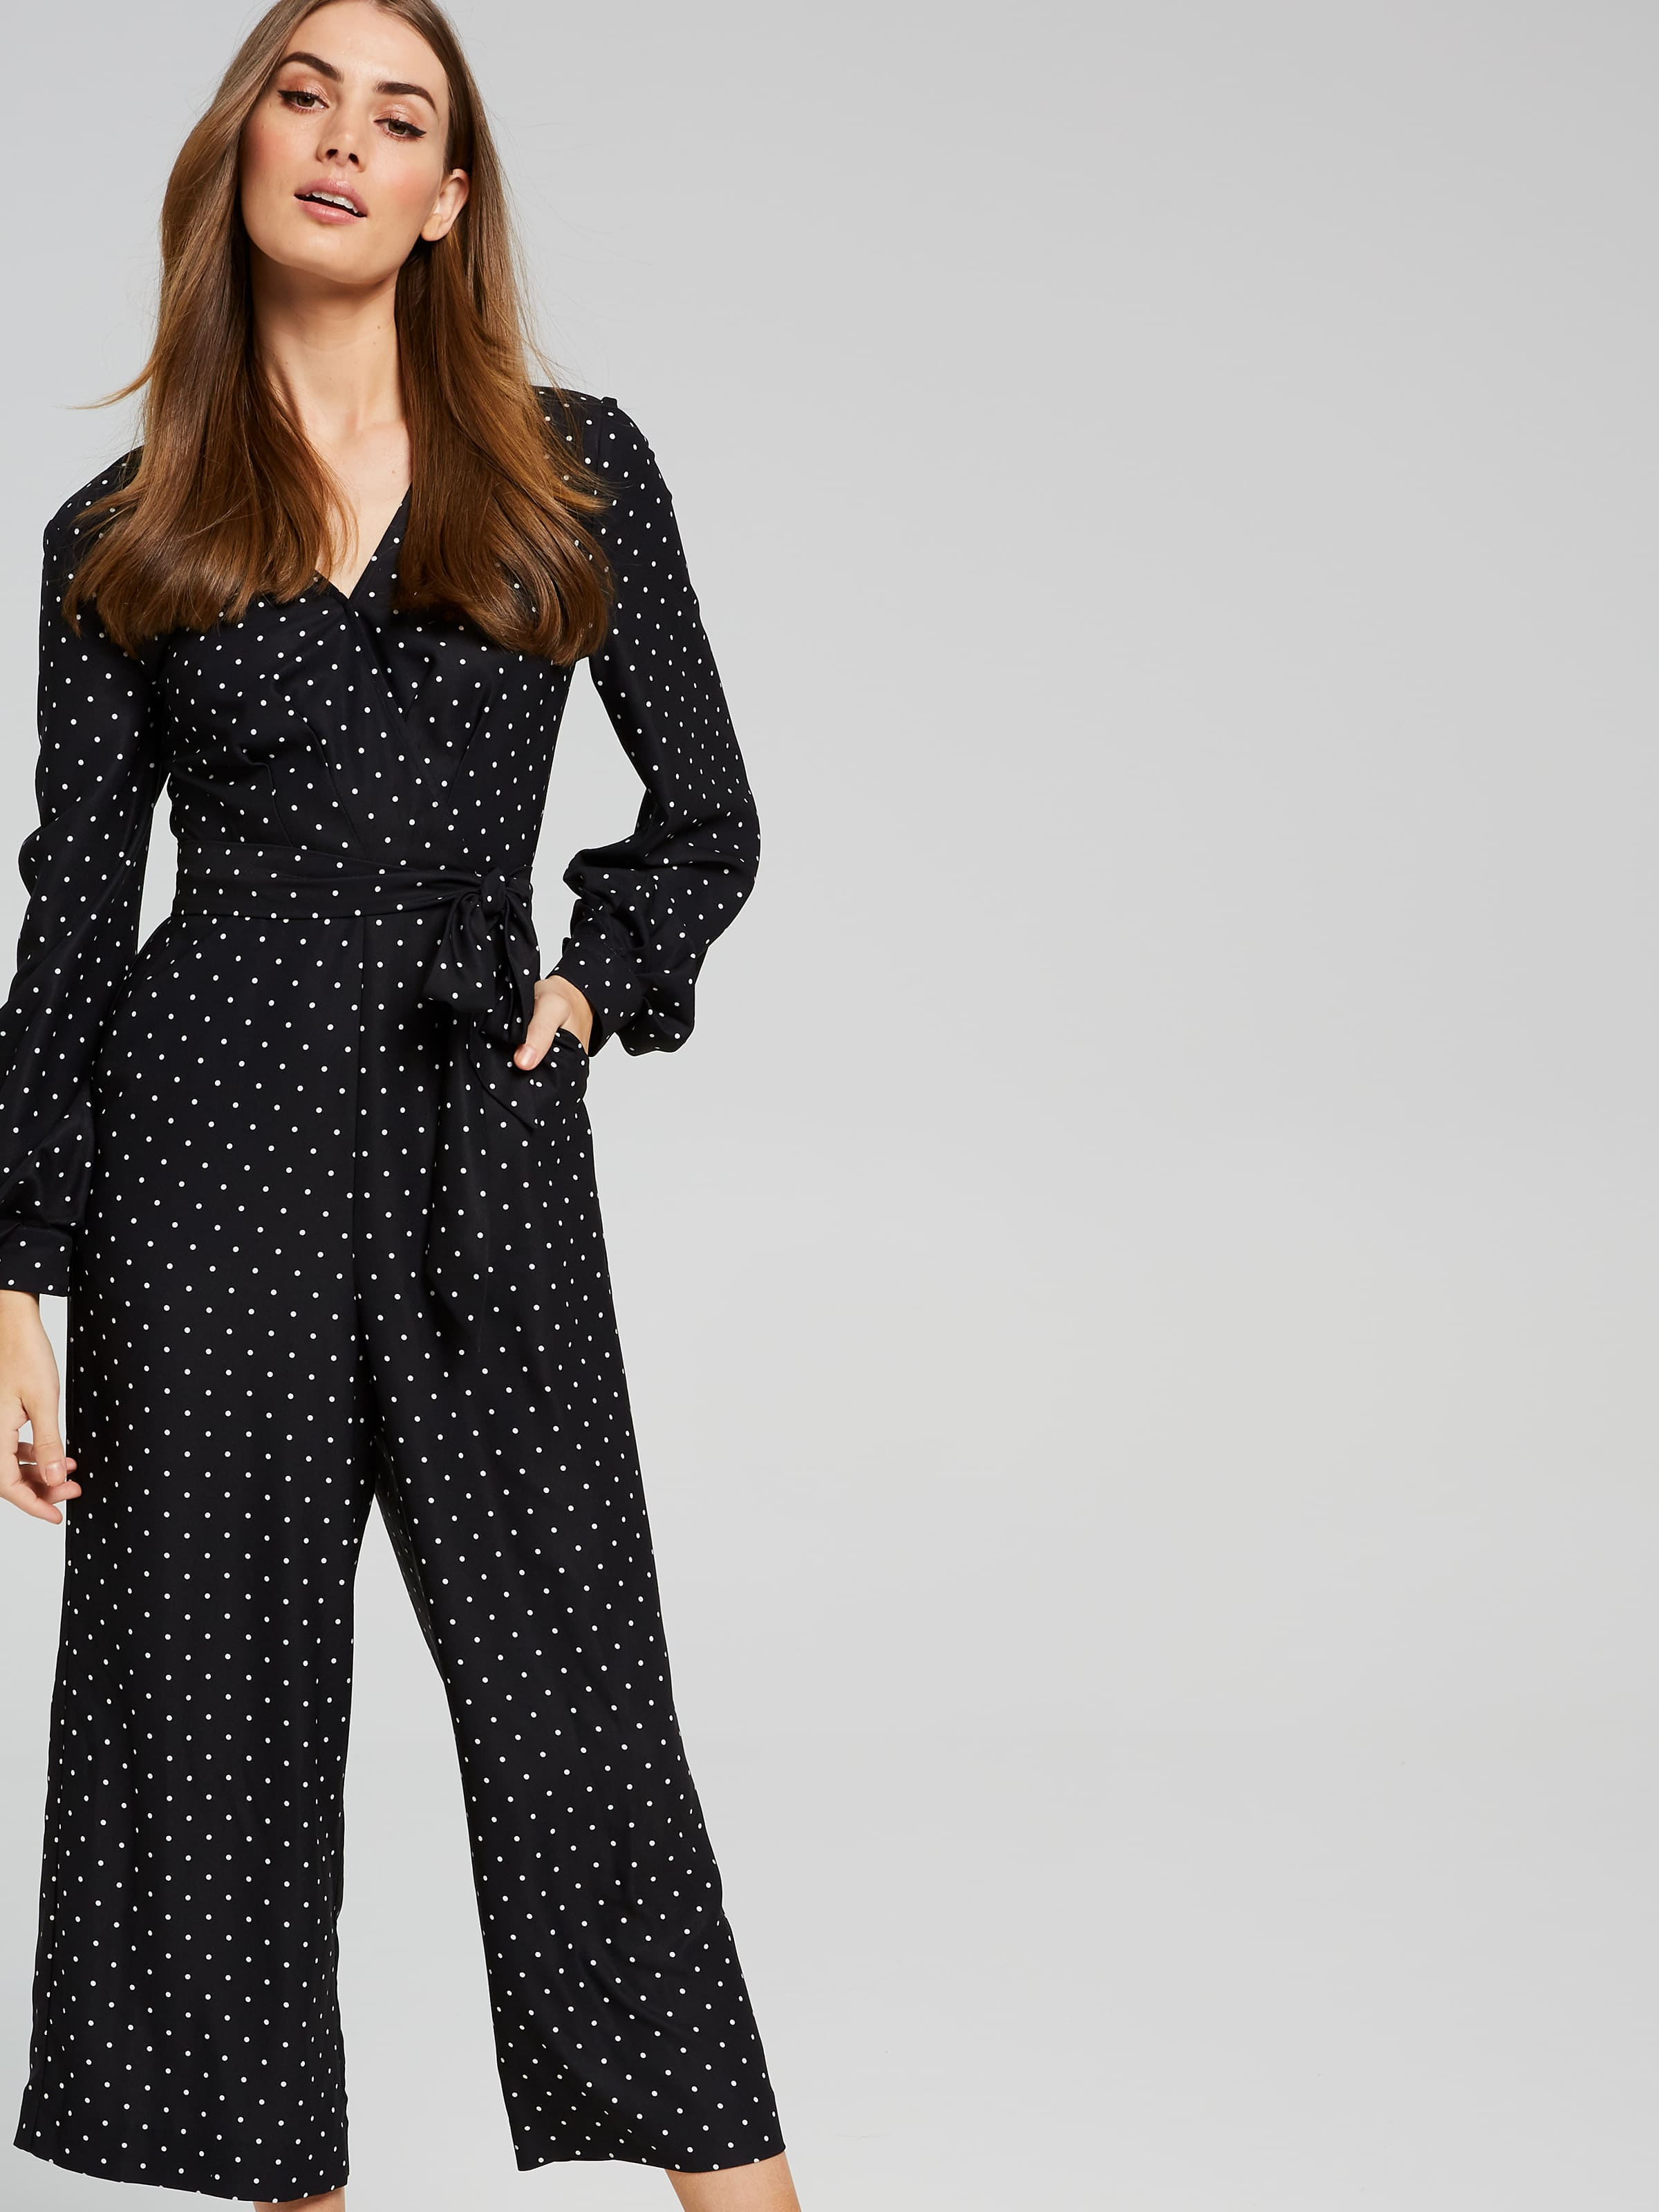 a57915c3693 ... Image for Pia Puff Sleeve Spot Jumpsuit from Portmans Online